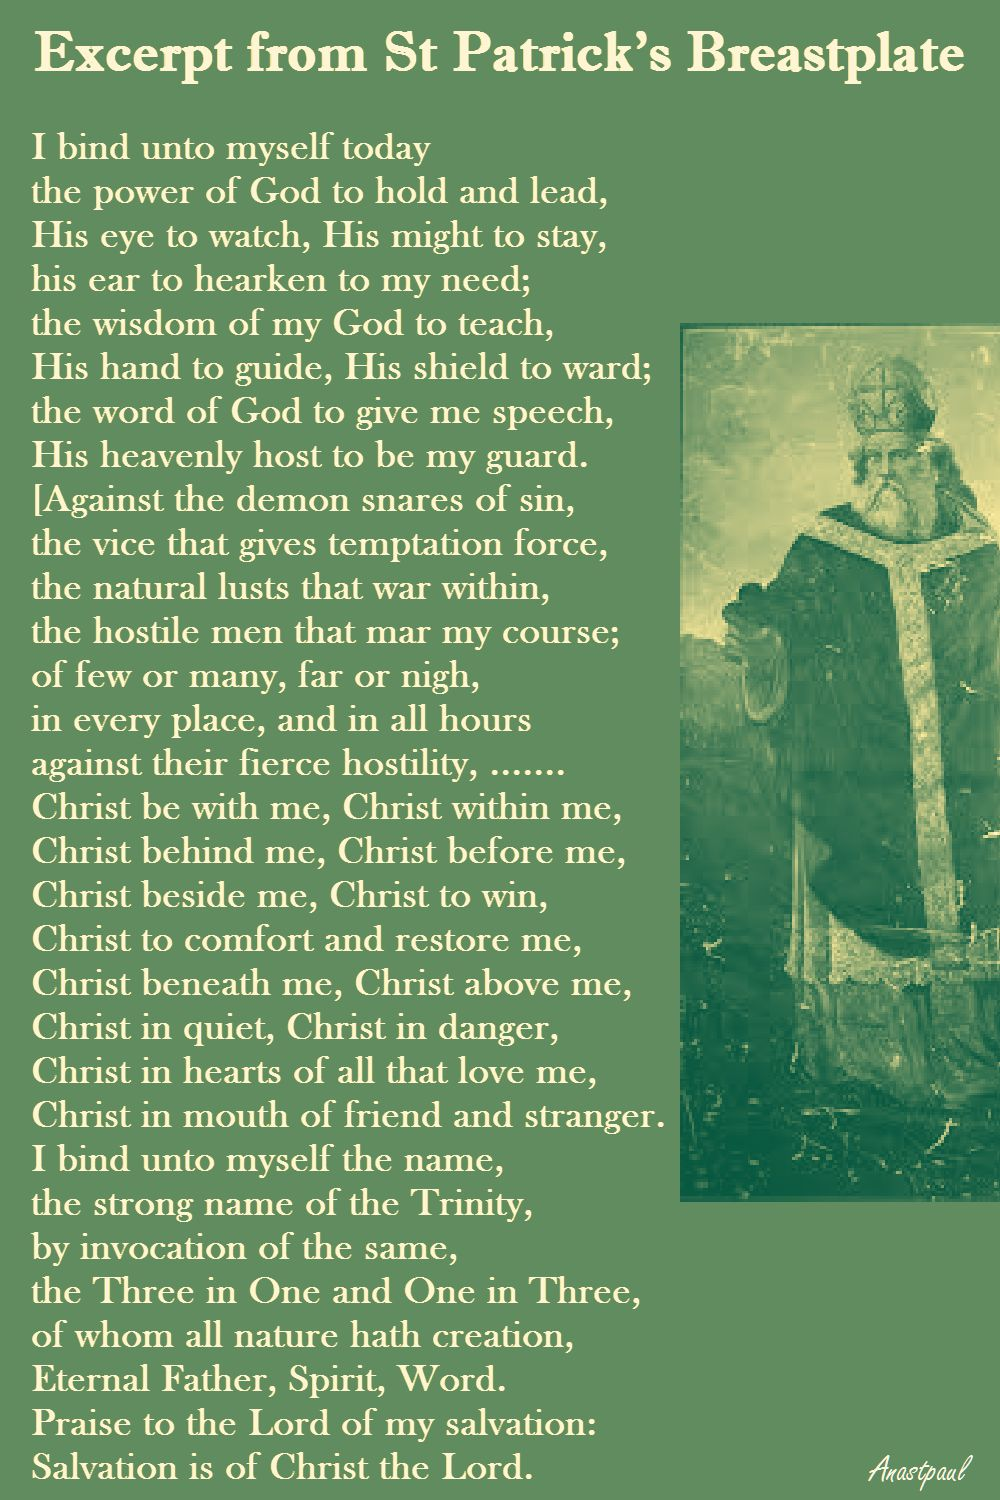 EXCERPT FROM ST P'S BREASTPLATE